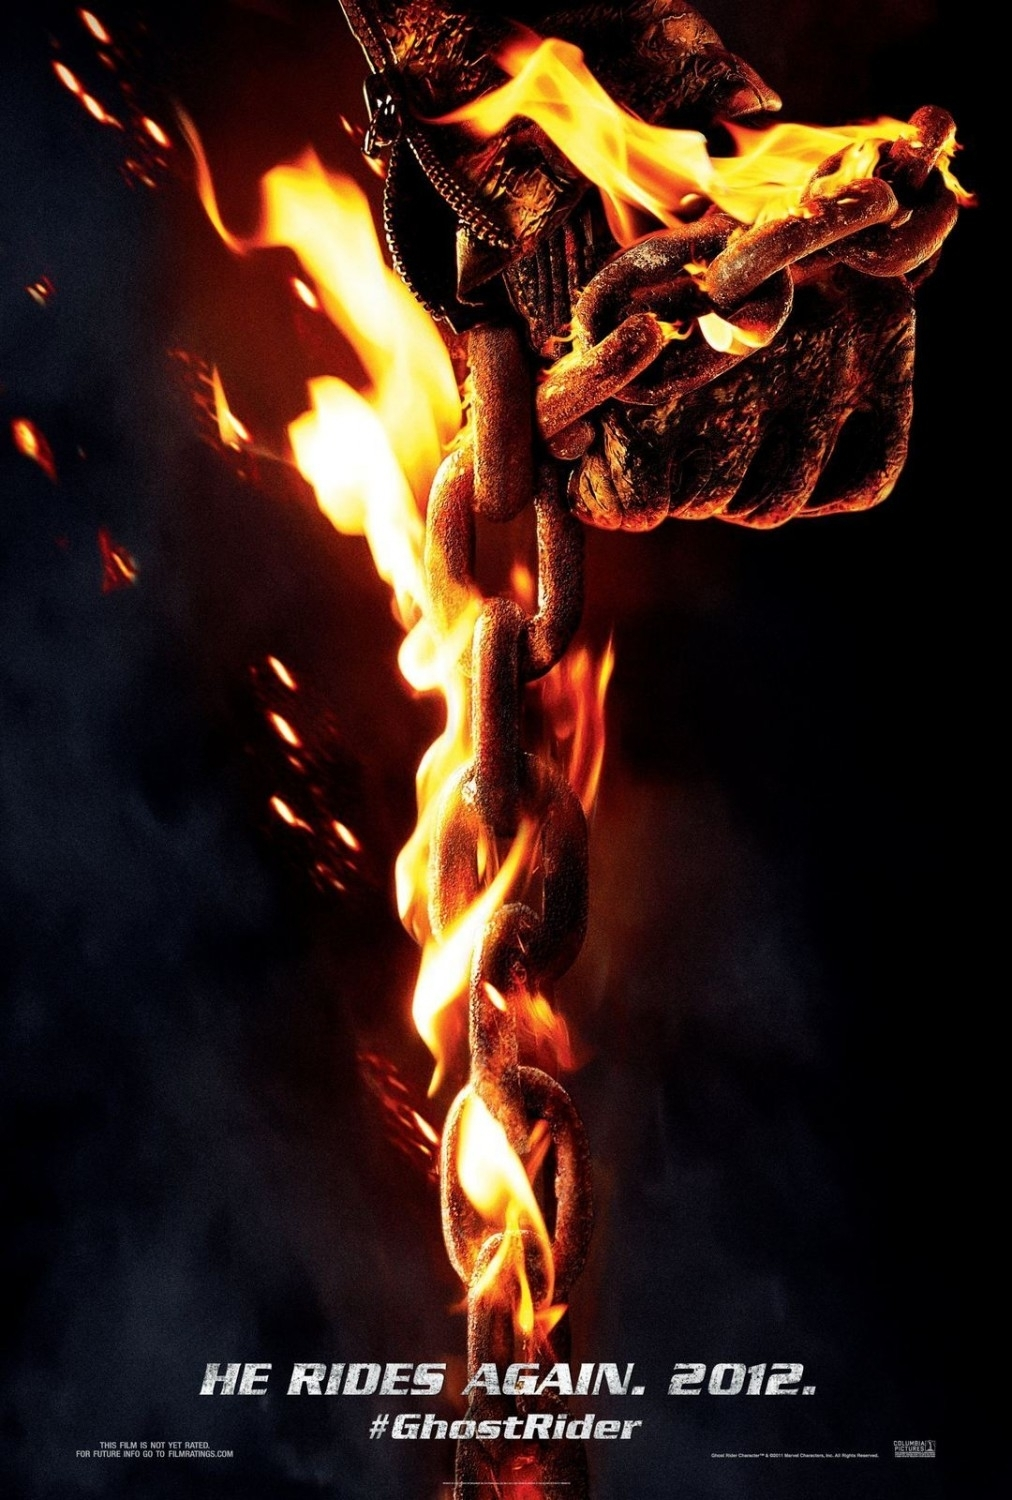 ghost rider 3 news from nicolas cage; says it's possible 'but it